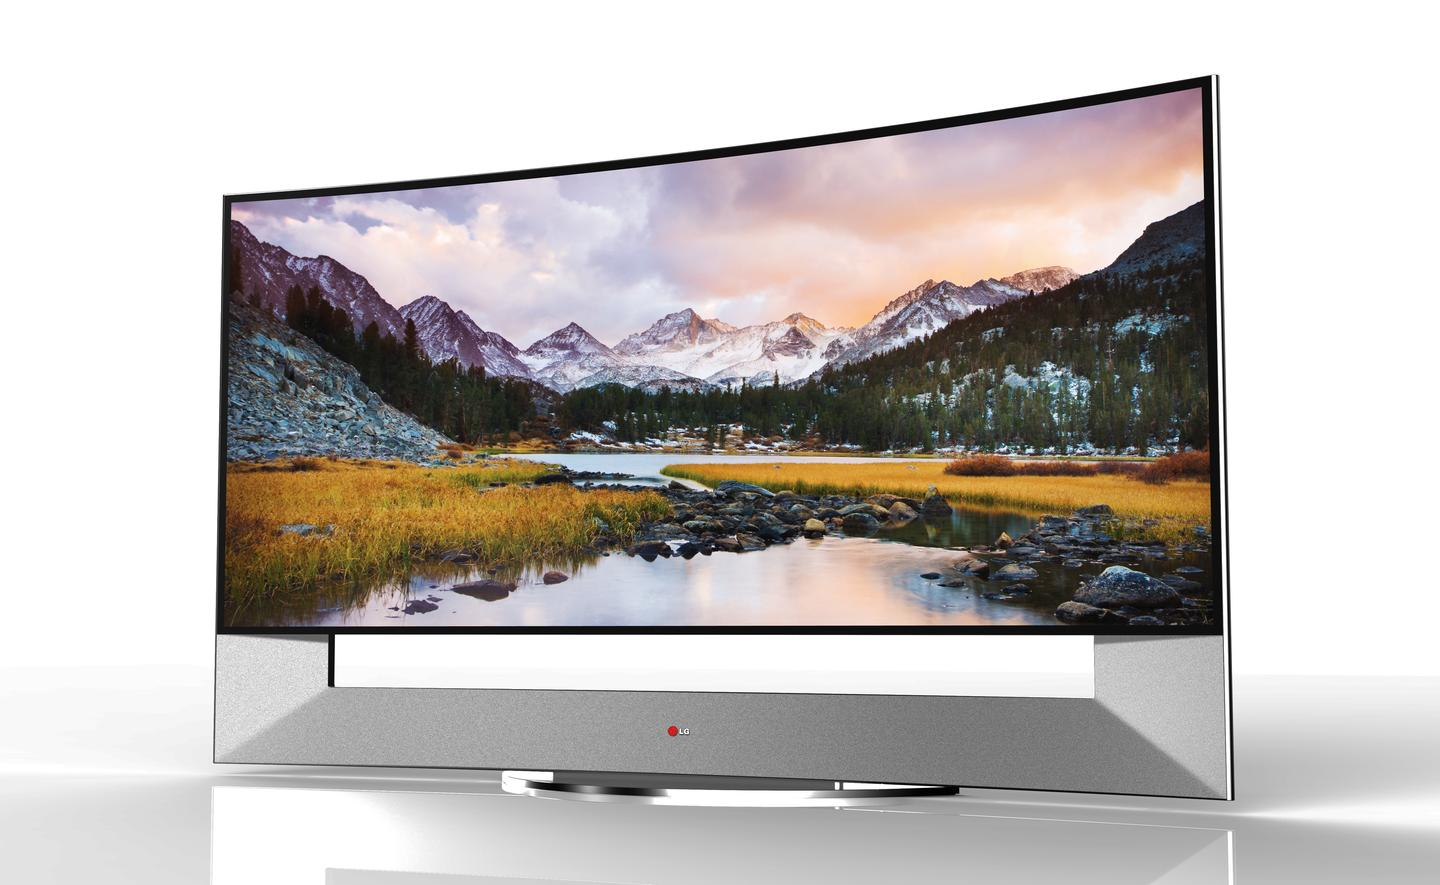 Measuring 105-inches diagonally and sporting a 21:9 aspect ratio, LG's upcoming 105UB9 could be the largest curved UHD TV in existence